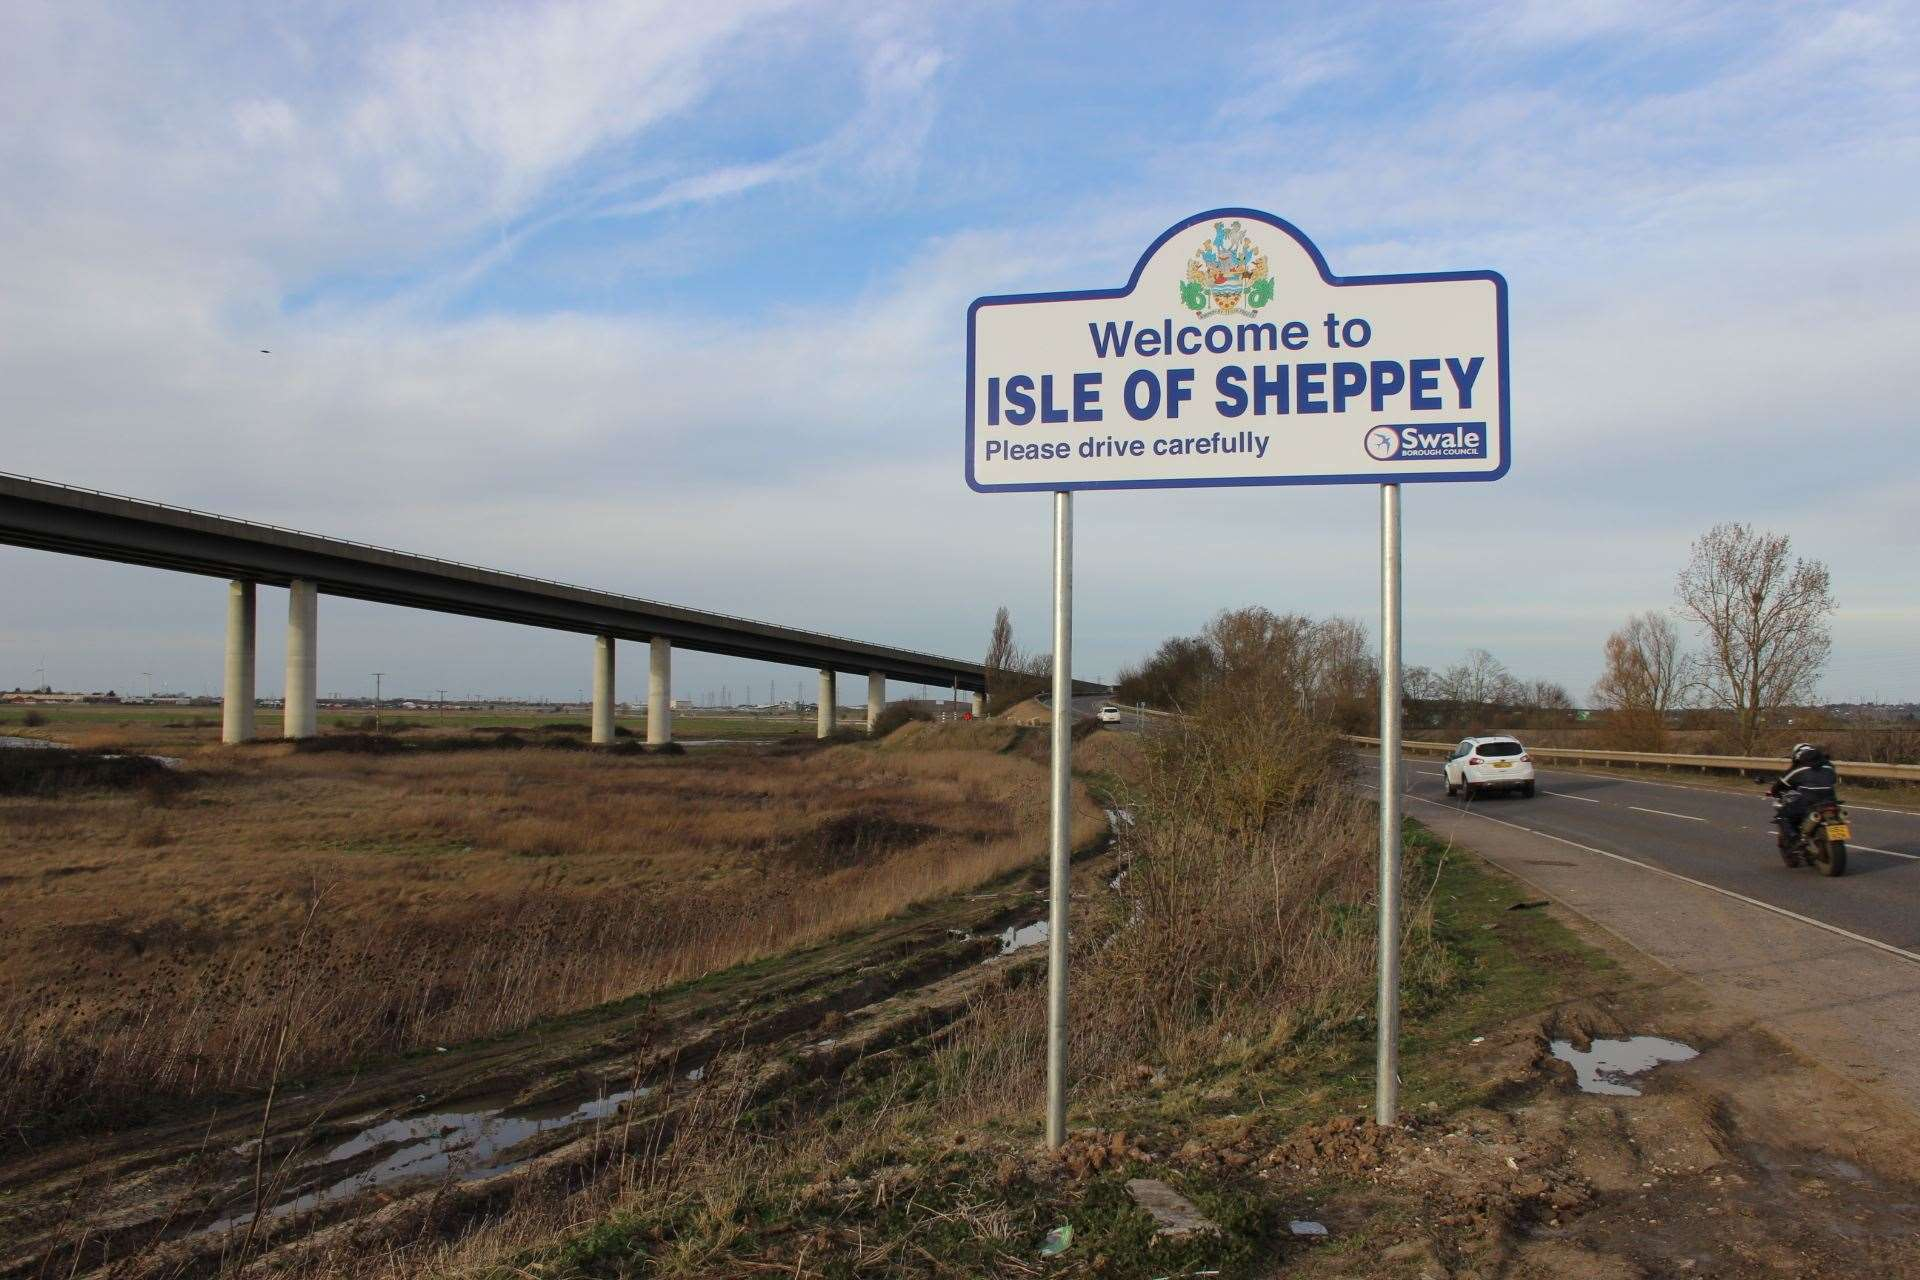 Welcome to the Isle of Sheppey sign(42027743)